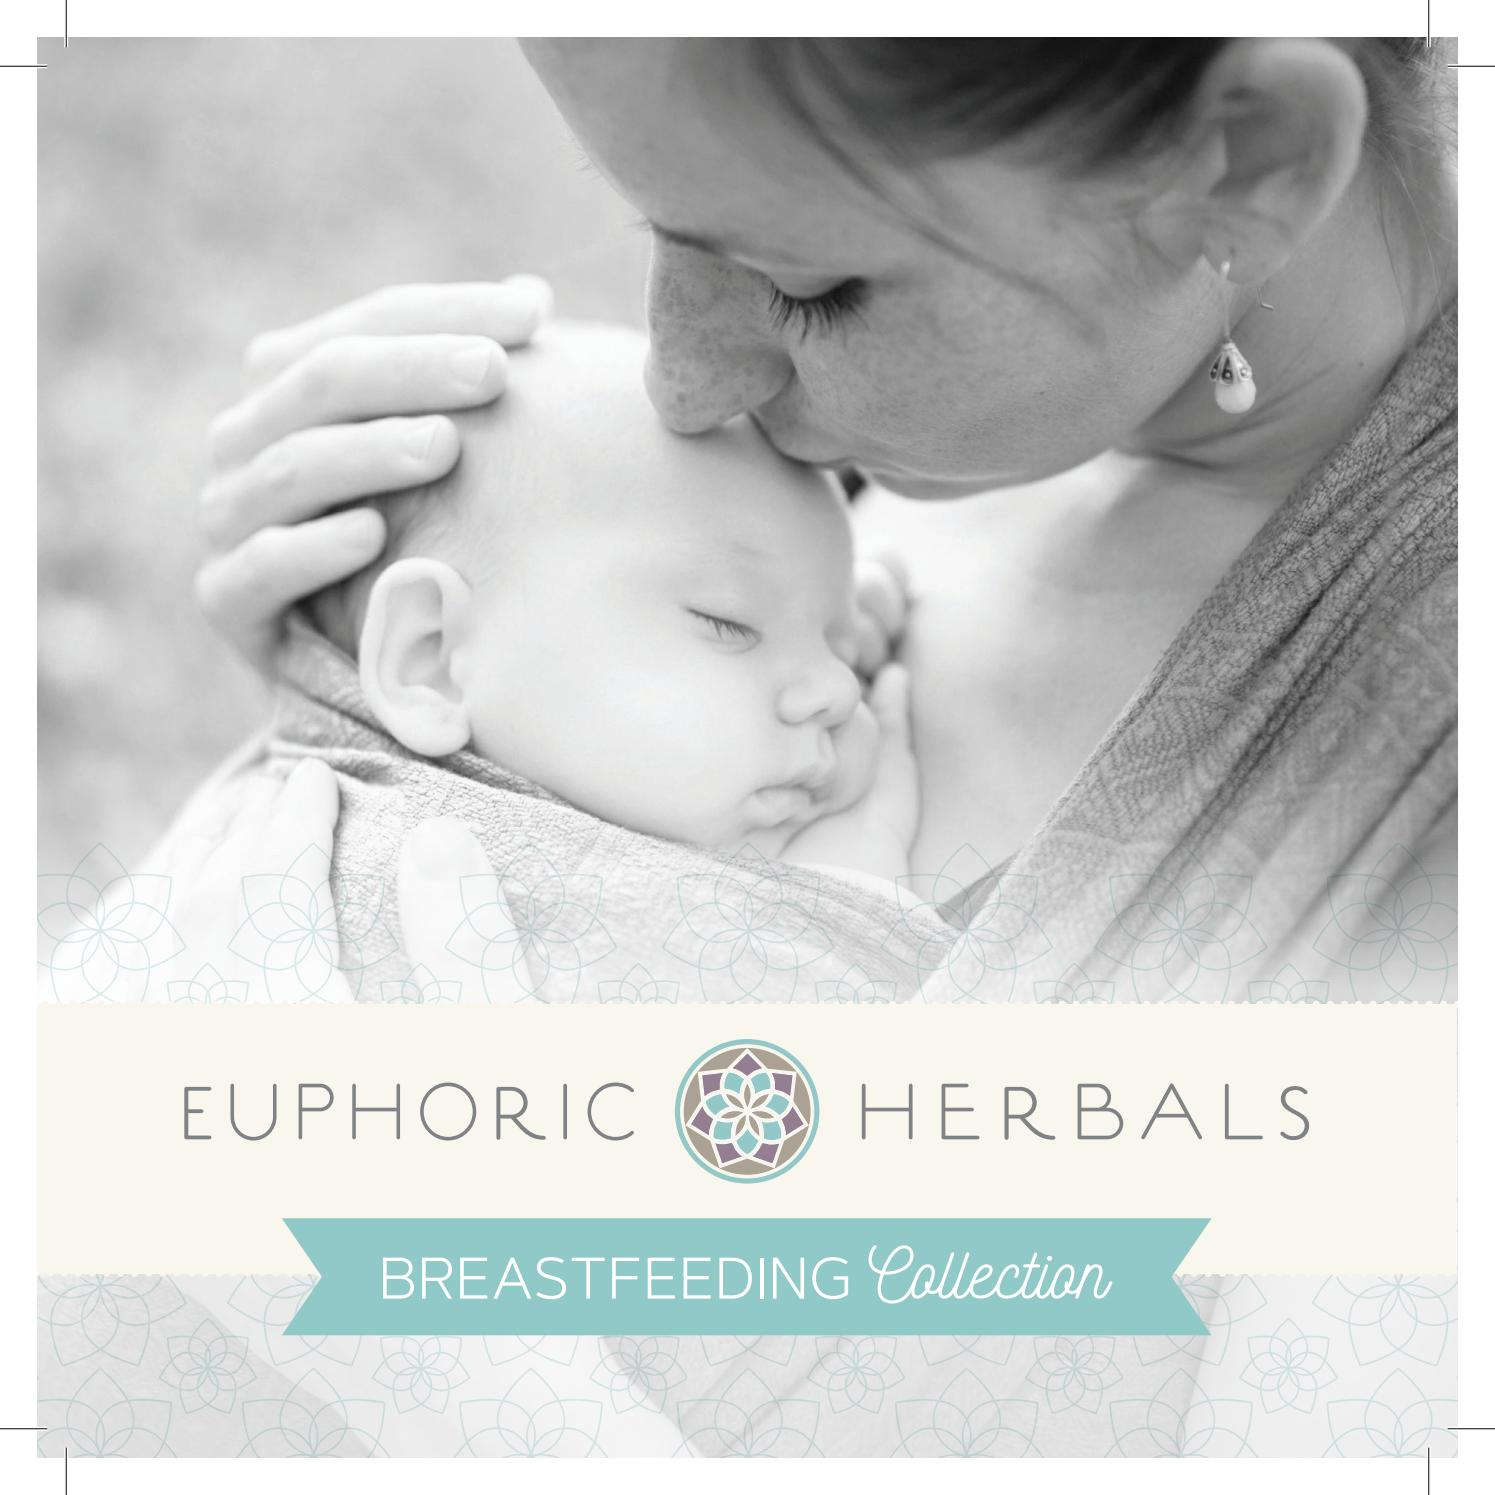 Euphoric Herbals Lactation Product Collection by Cindy